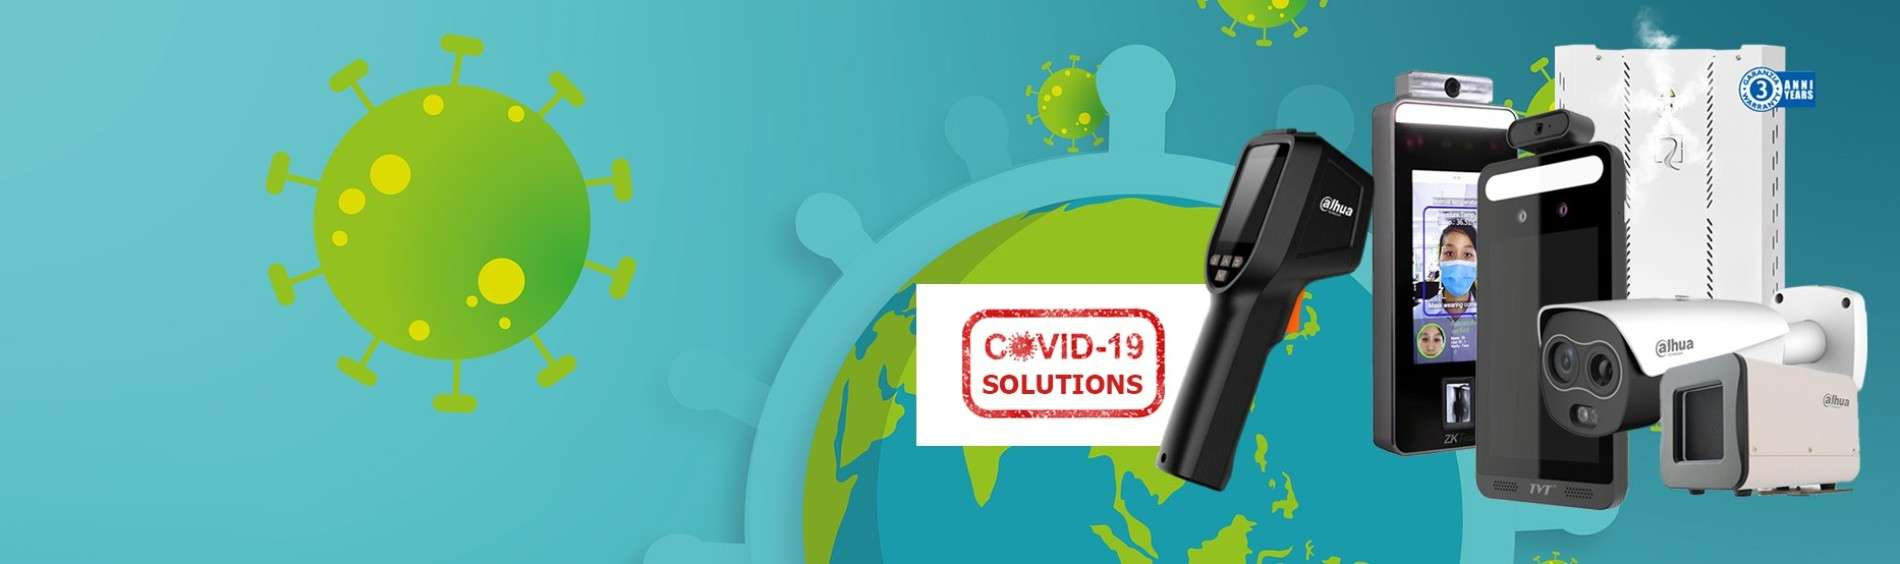 COVID-19 Solutions